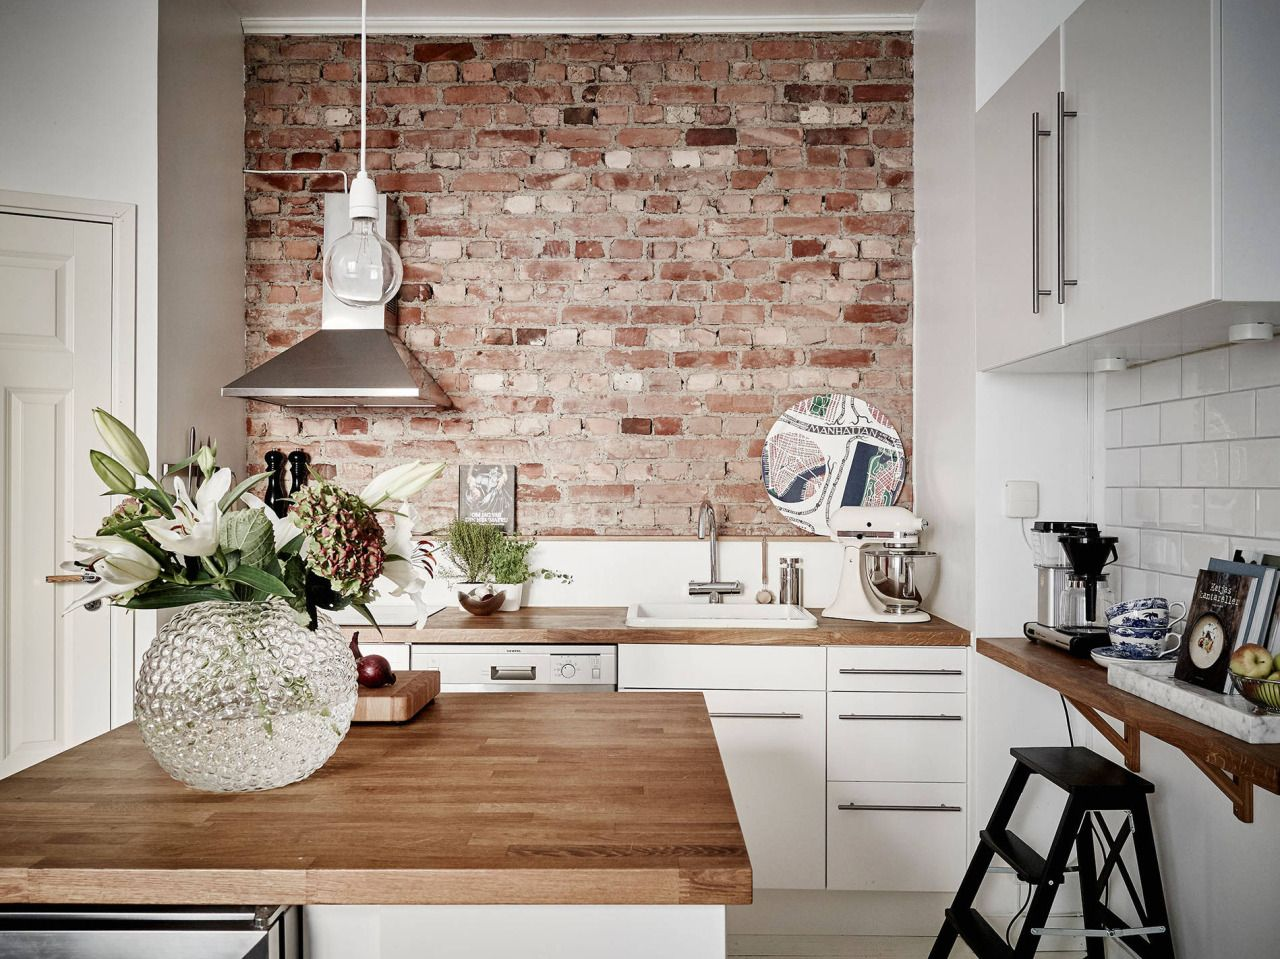 banquette backs up to island exposed brick kitchen from VT interiors: